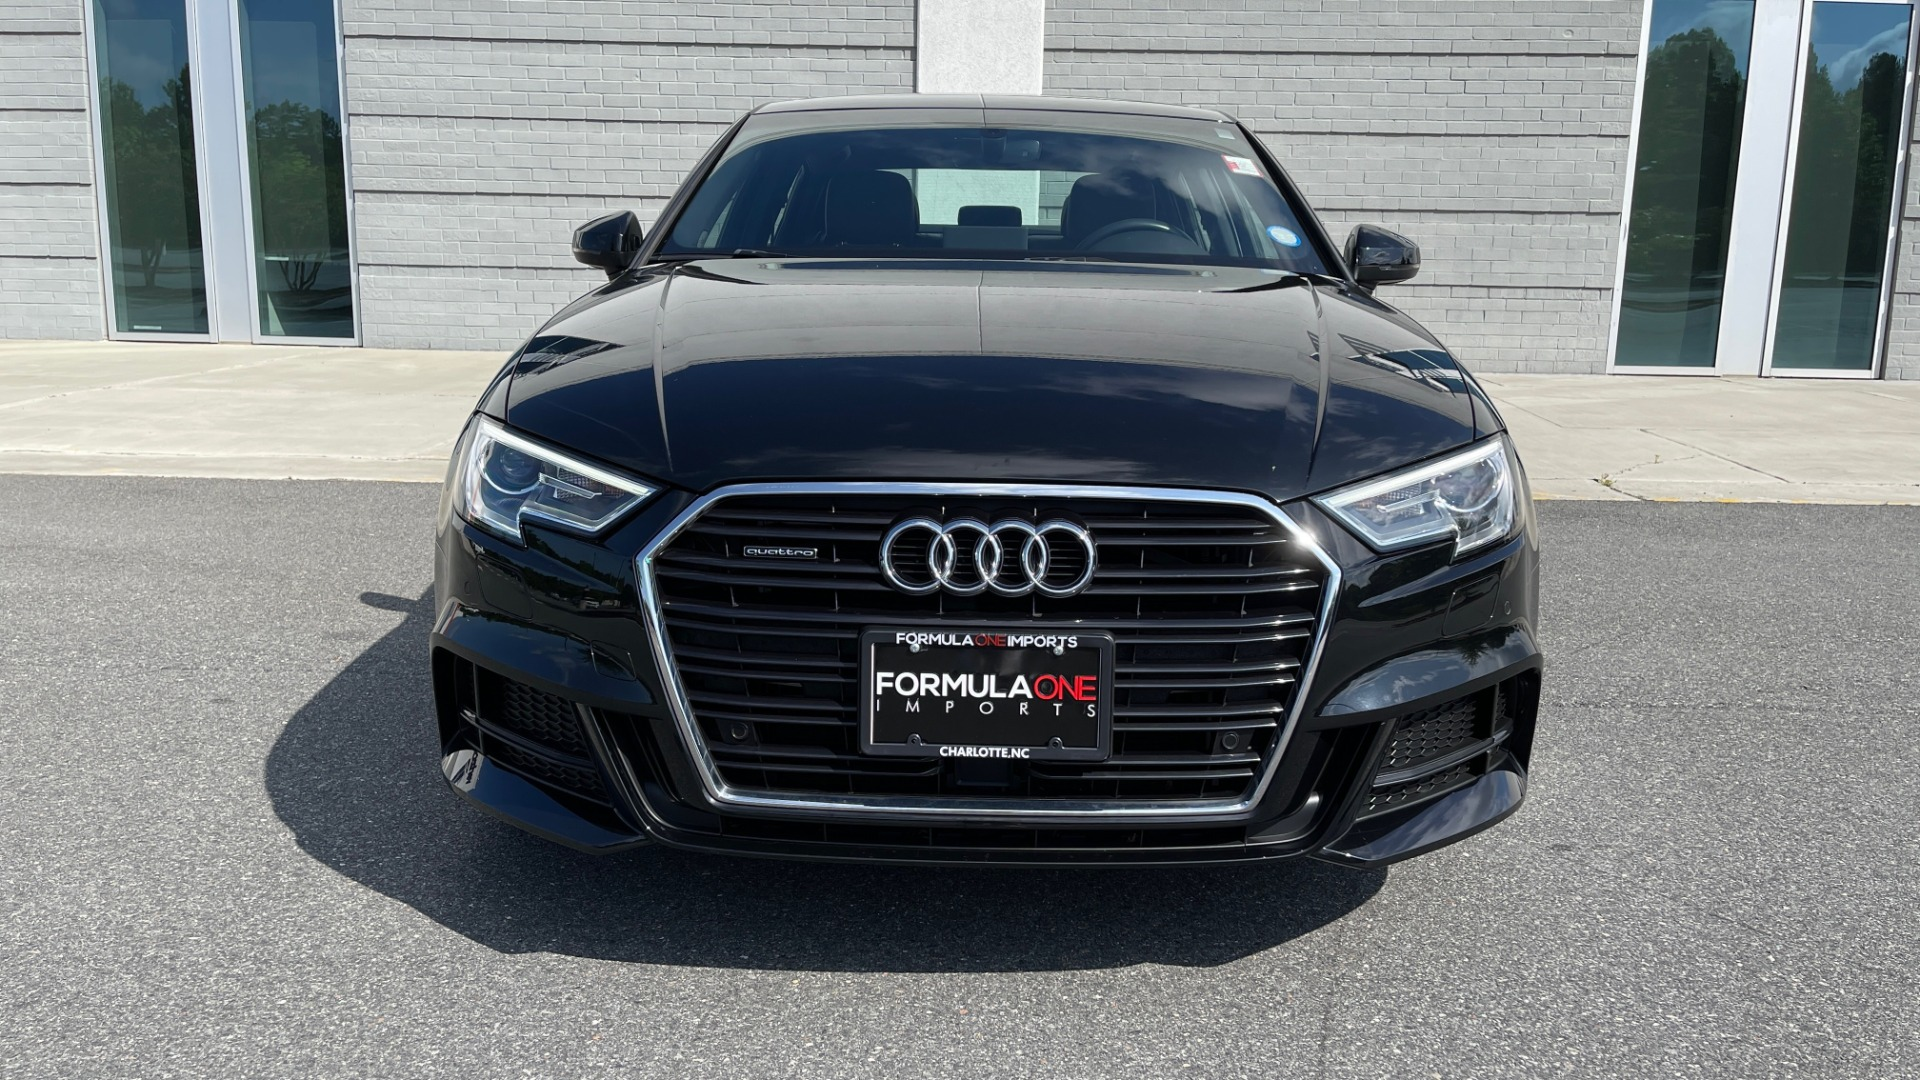 Used 2018 Audi A3 SEDAN PREMIUM PLUS / S-LINE / PANO-ROOF / PARK SYS / REARVIEW for sale $31,795 at Formula Imports in Charlotte NC 28227 11